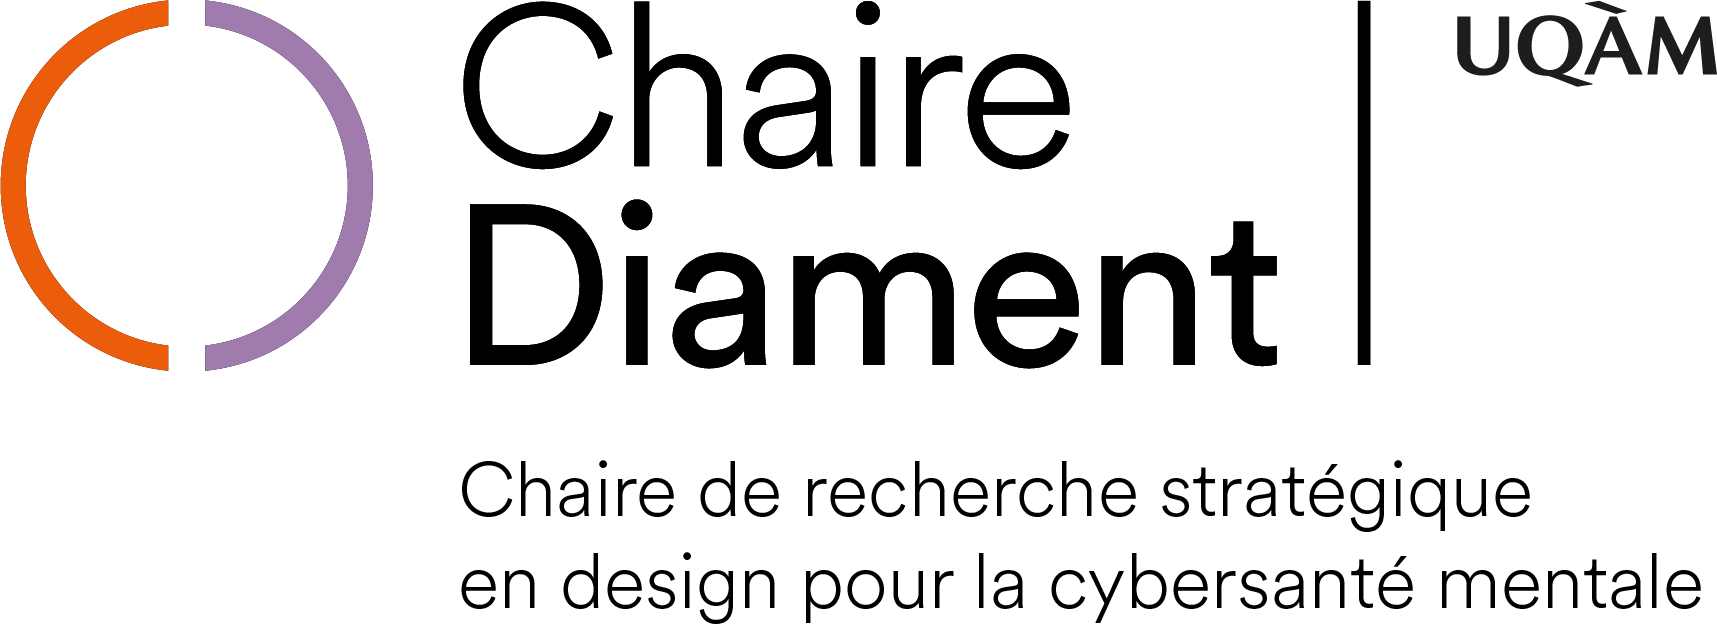 Chaire Diament UQAM